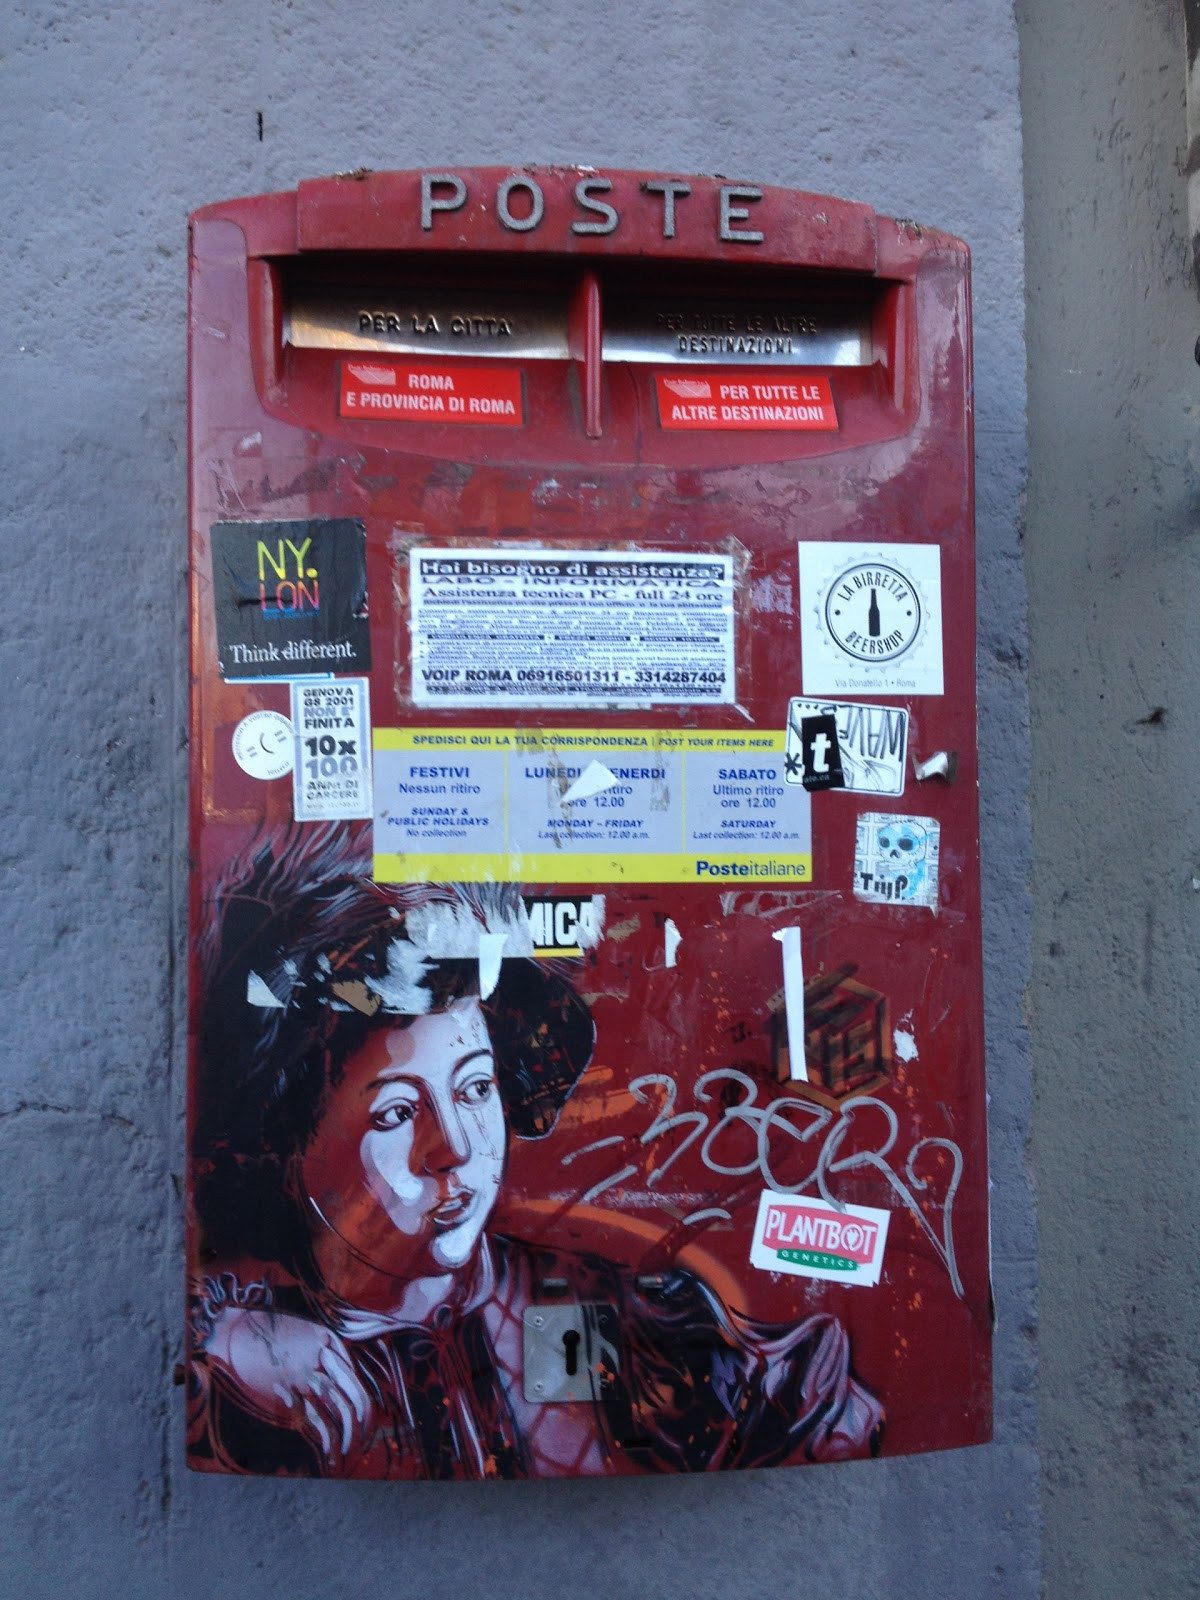 Mailbox in Trastevere with Caravaggio stencil, © Tiffany Parks